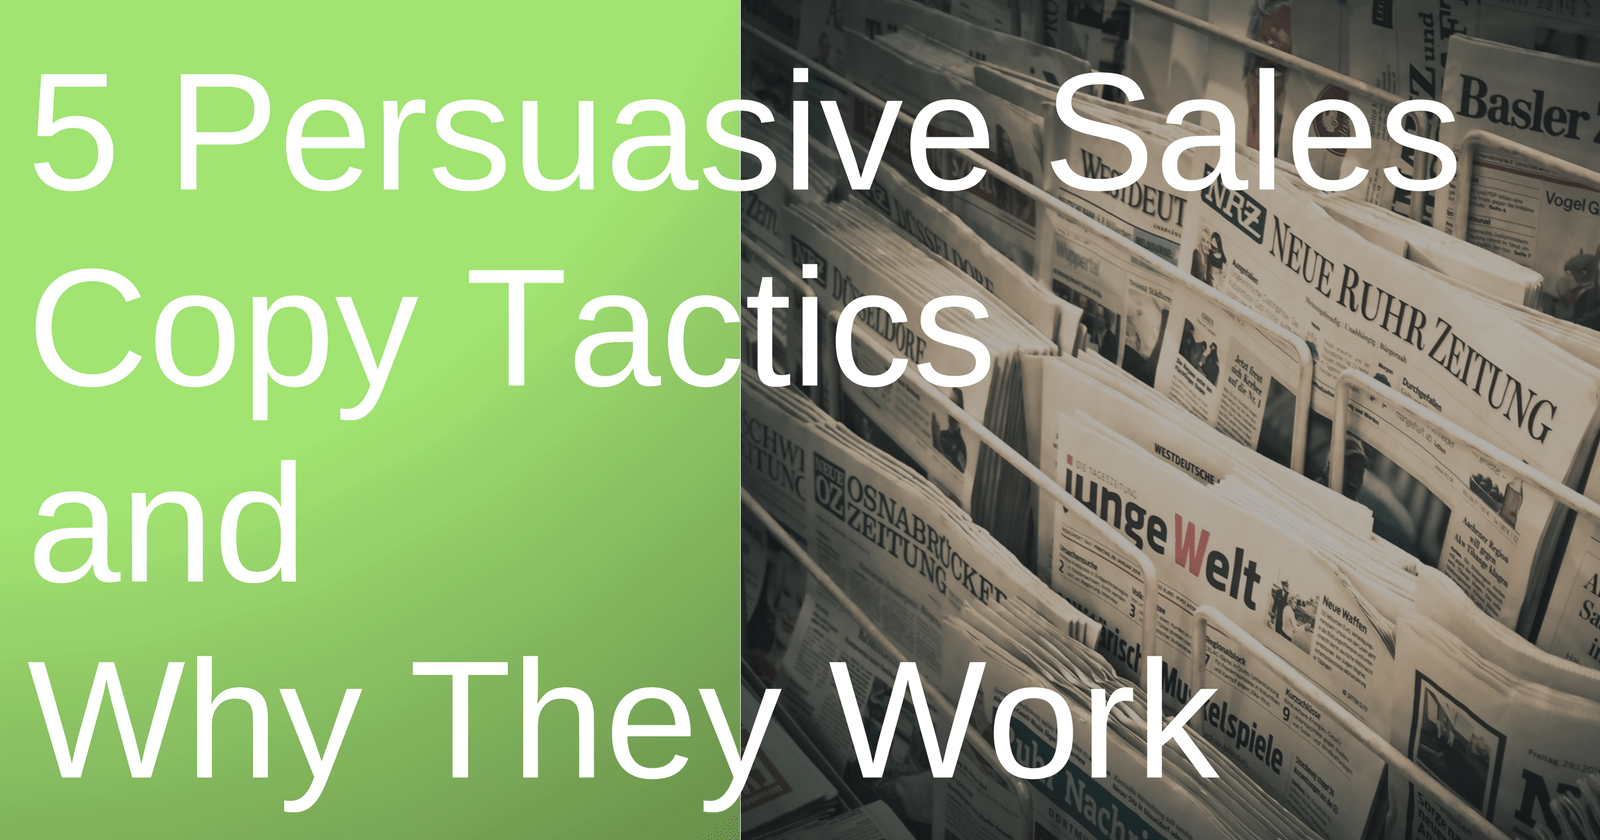 5 Persuasive Sales Copy Tactics & Why They Work